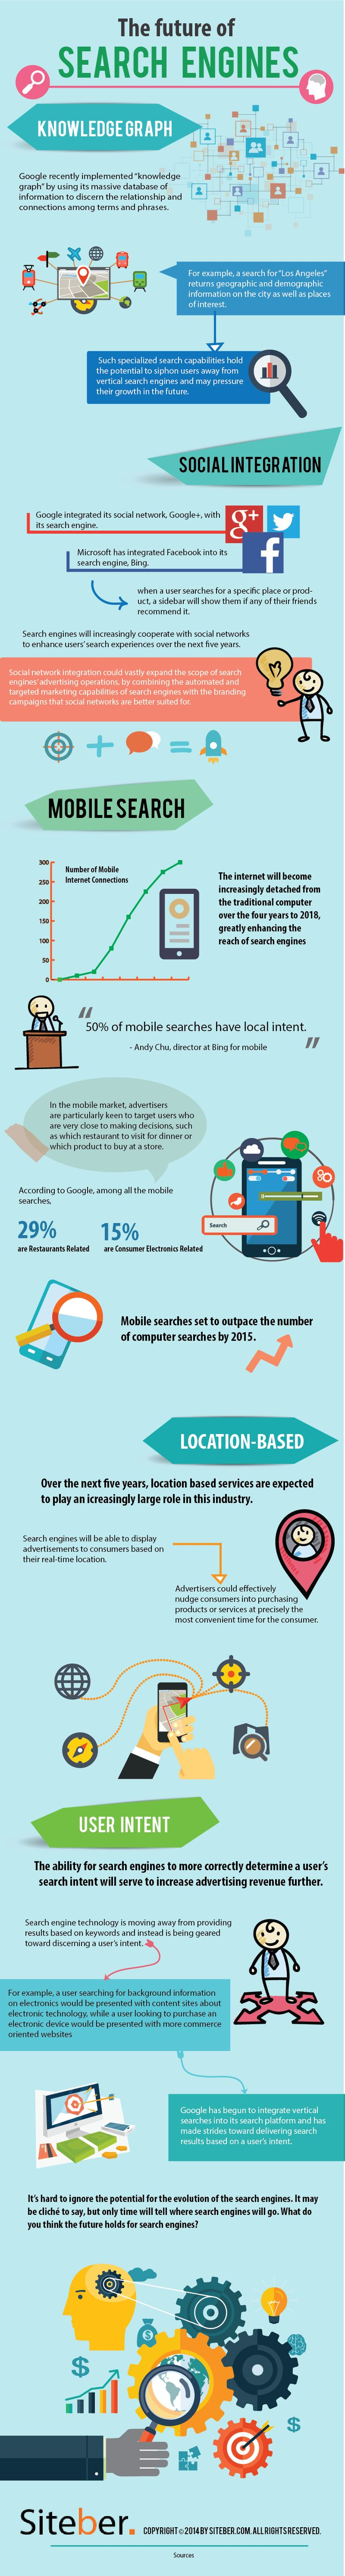 The Future of Search Engines [Infographic] #Infografía